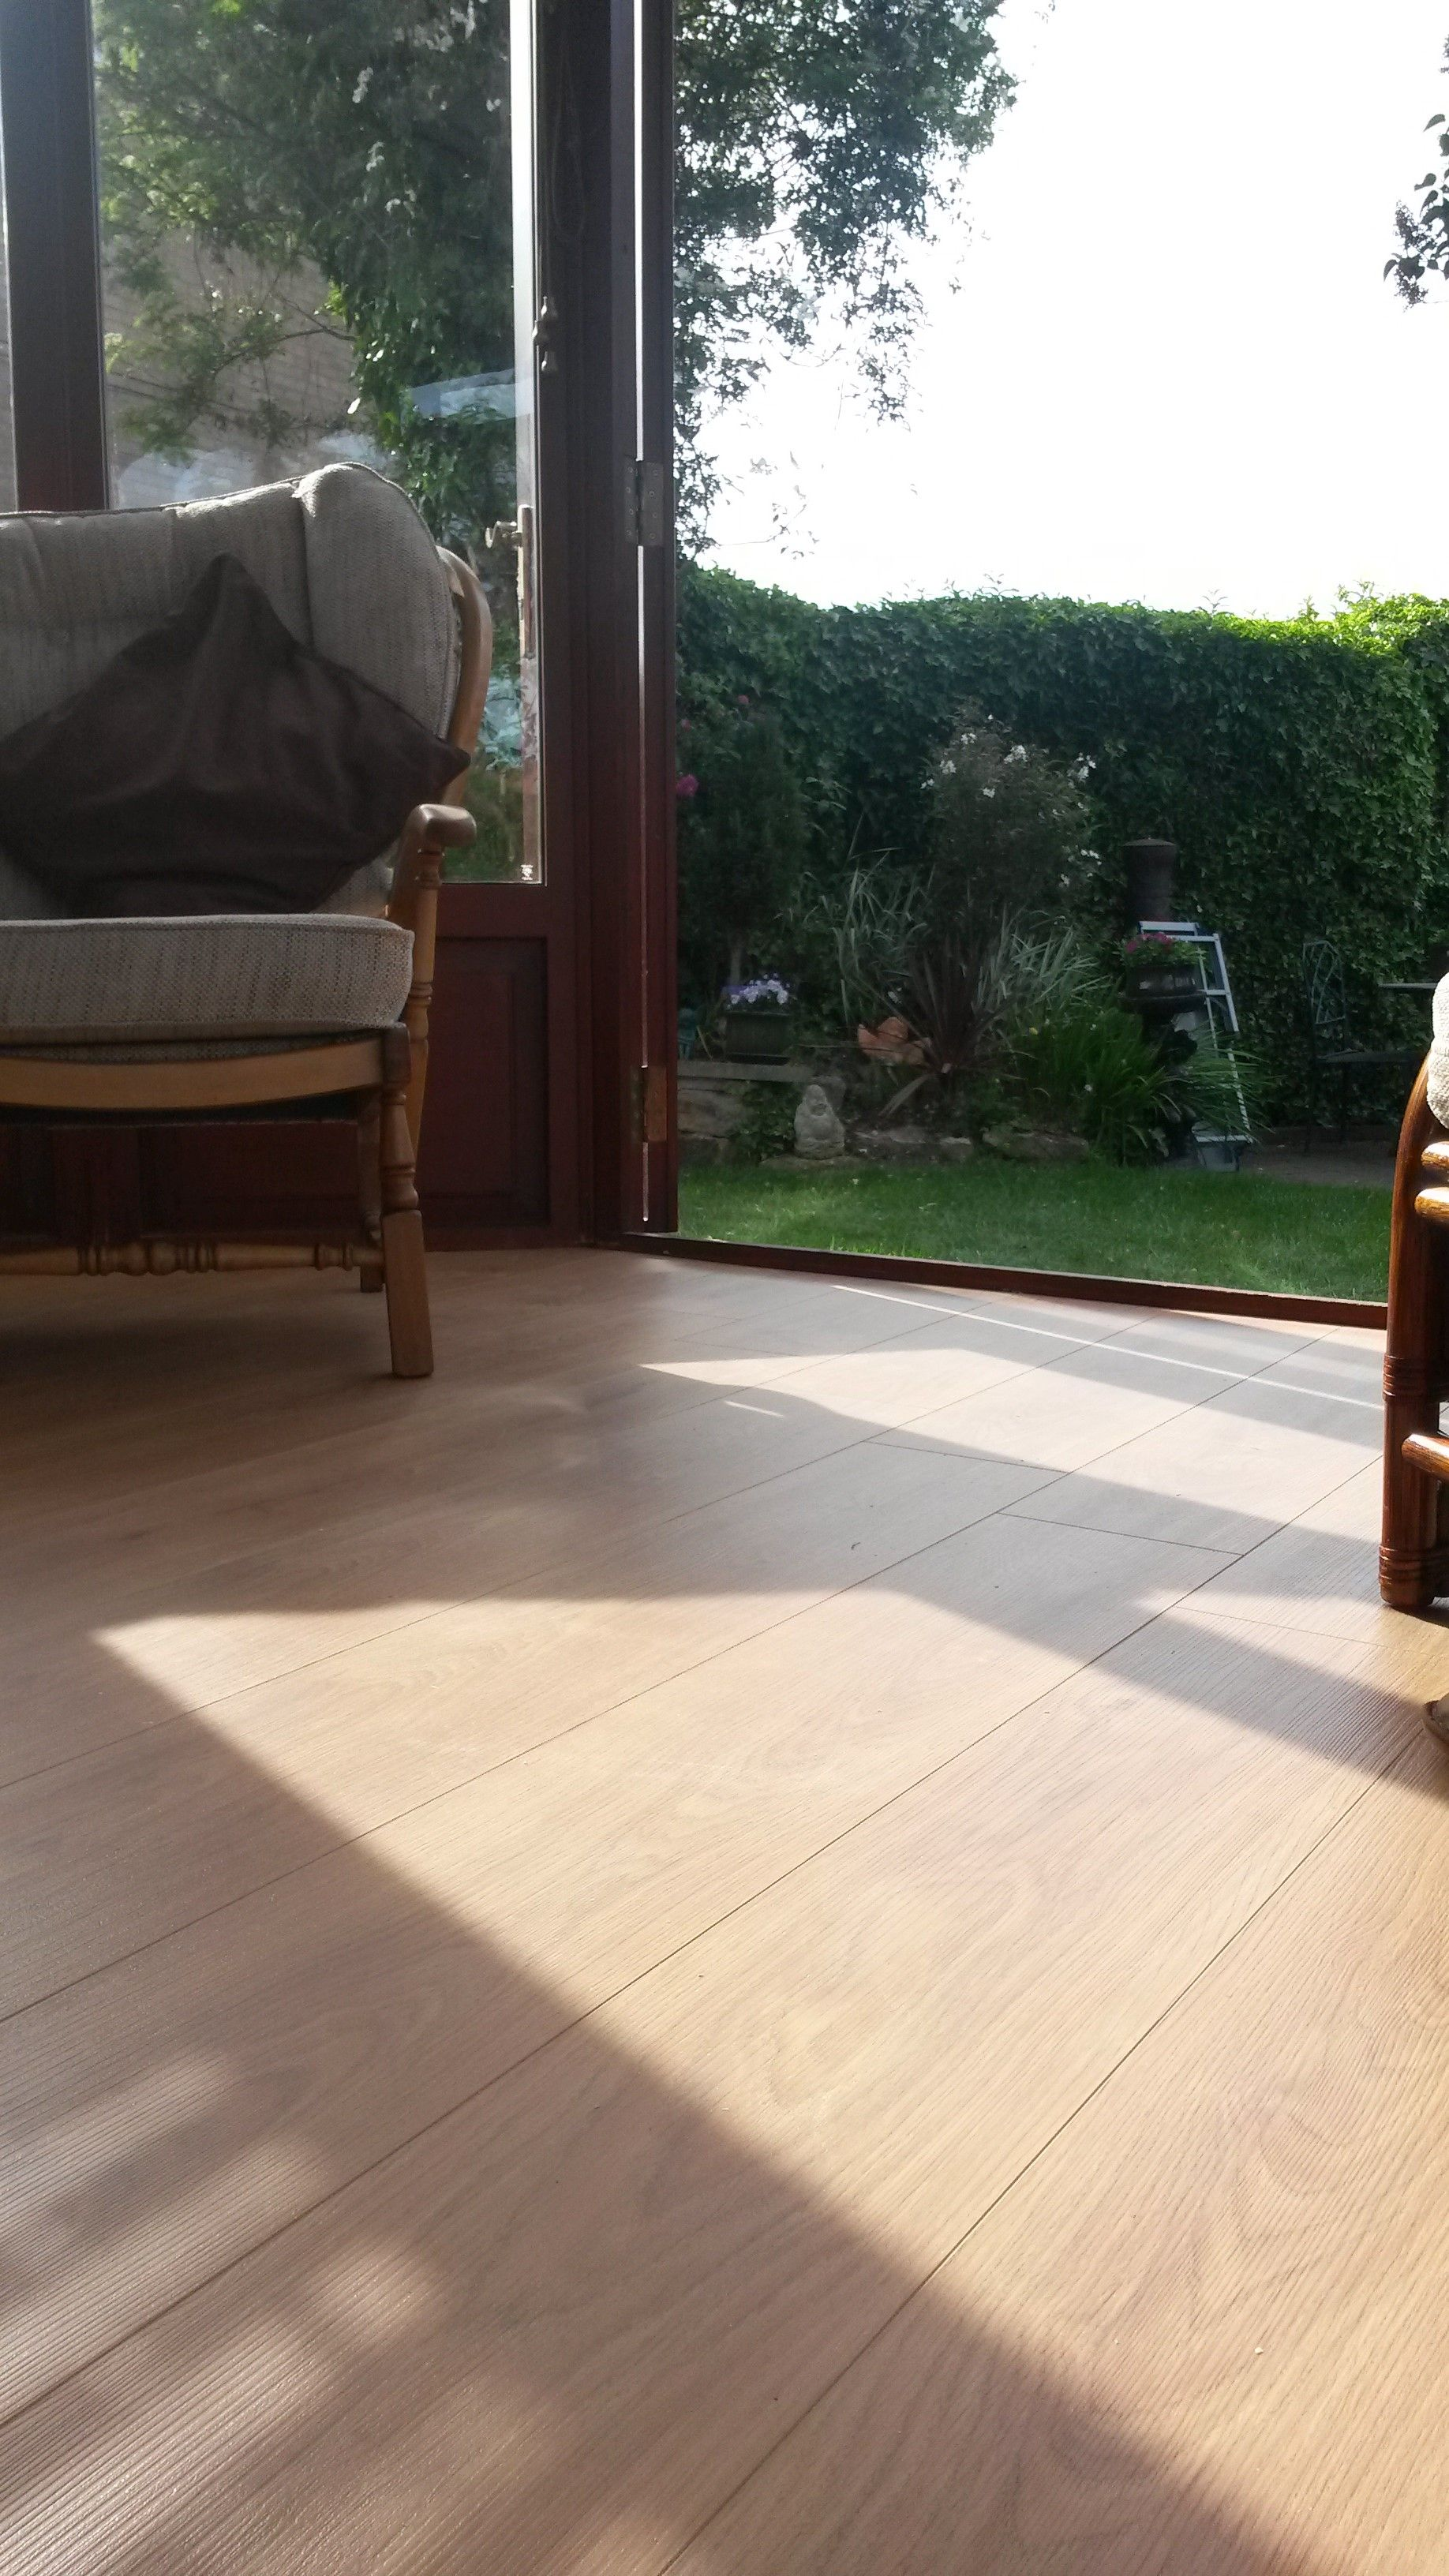 Laminate flooring image by Discount Flooring Depot on